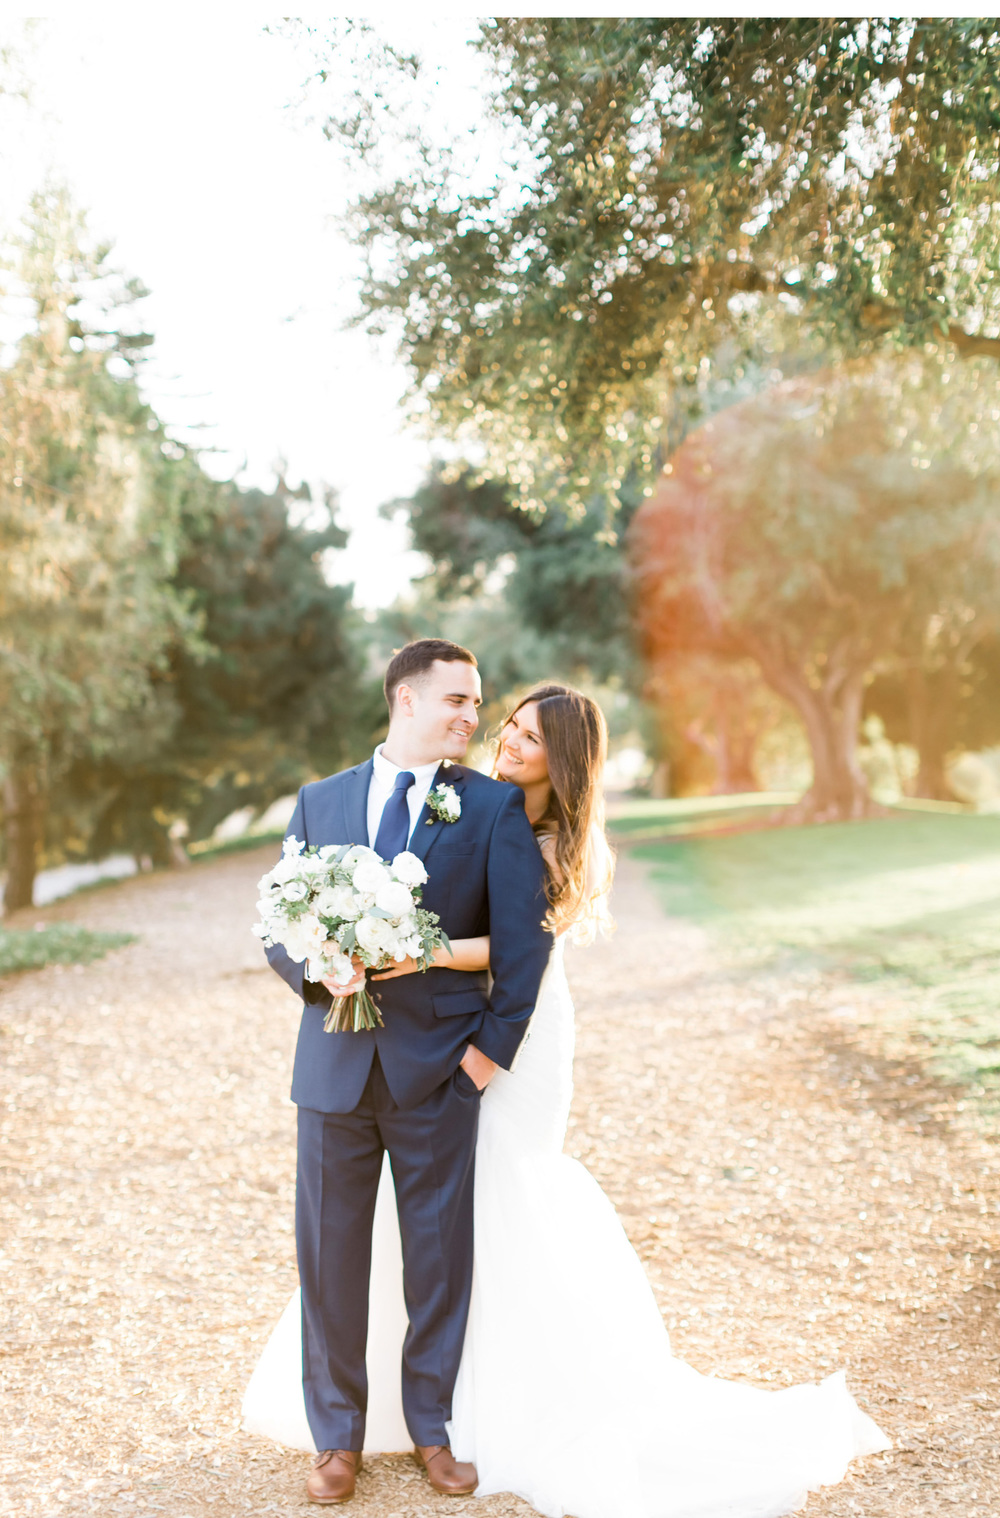 Backyard-Wedding-Southern-CA-Natalie-Schutt-Photography_01.jpg